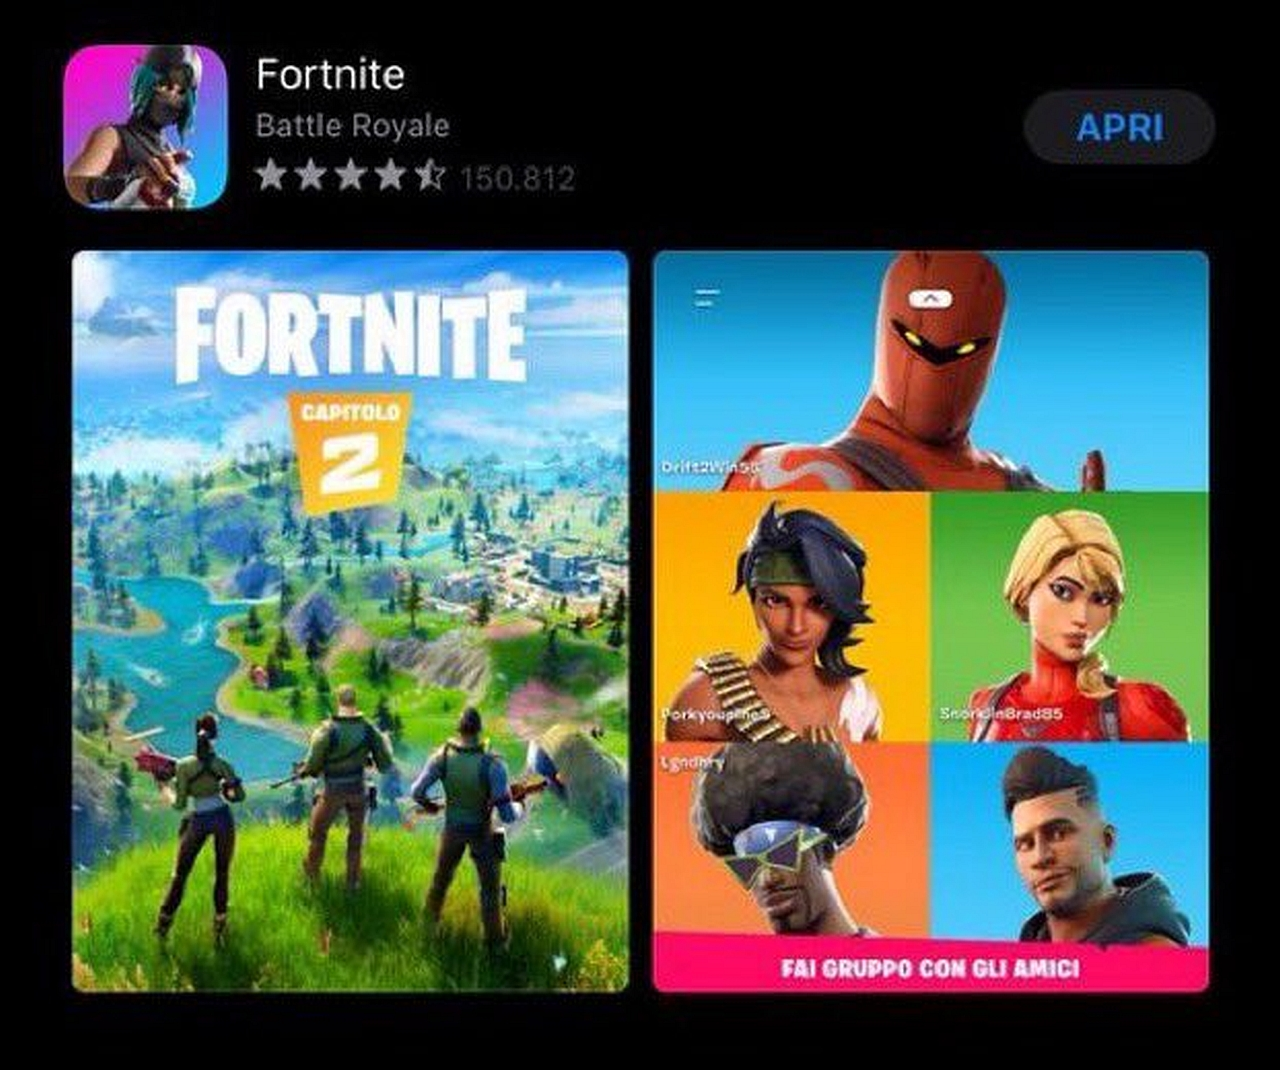 Fortnite Chapter 2 Might Have Been Leaked Via App Store New